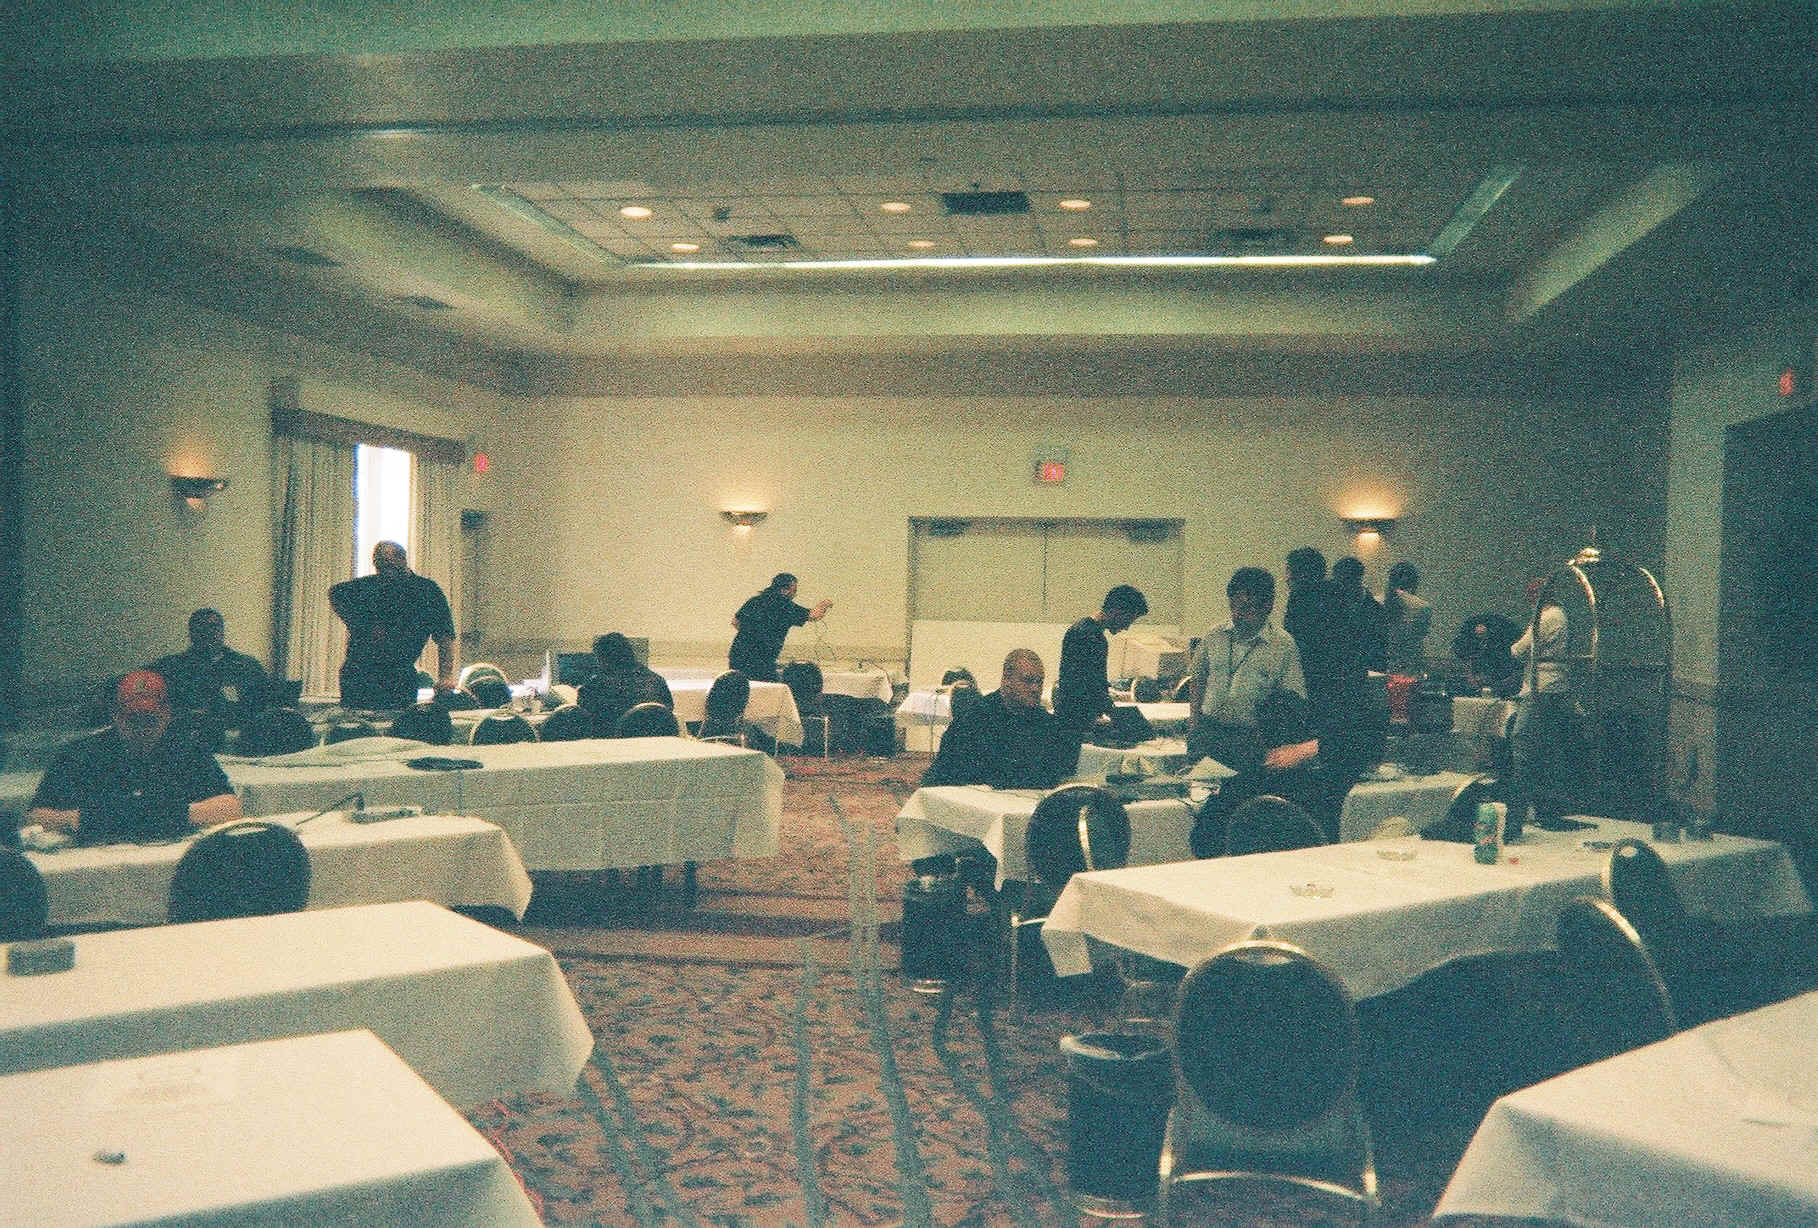 Networking room early Friday